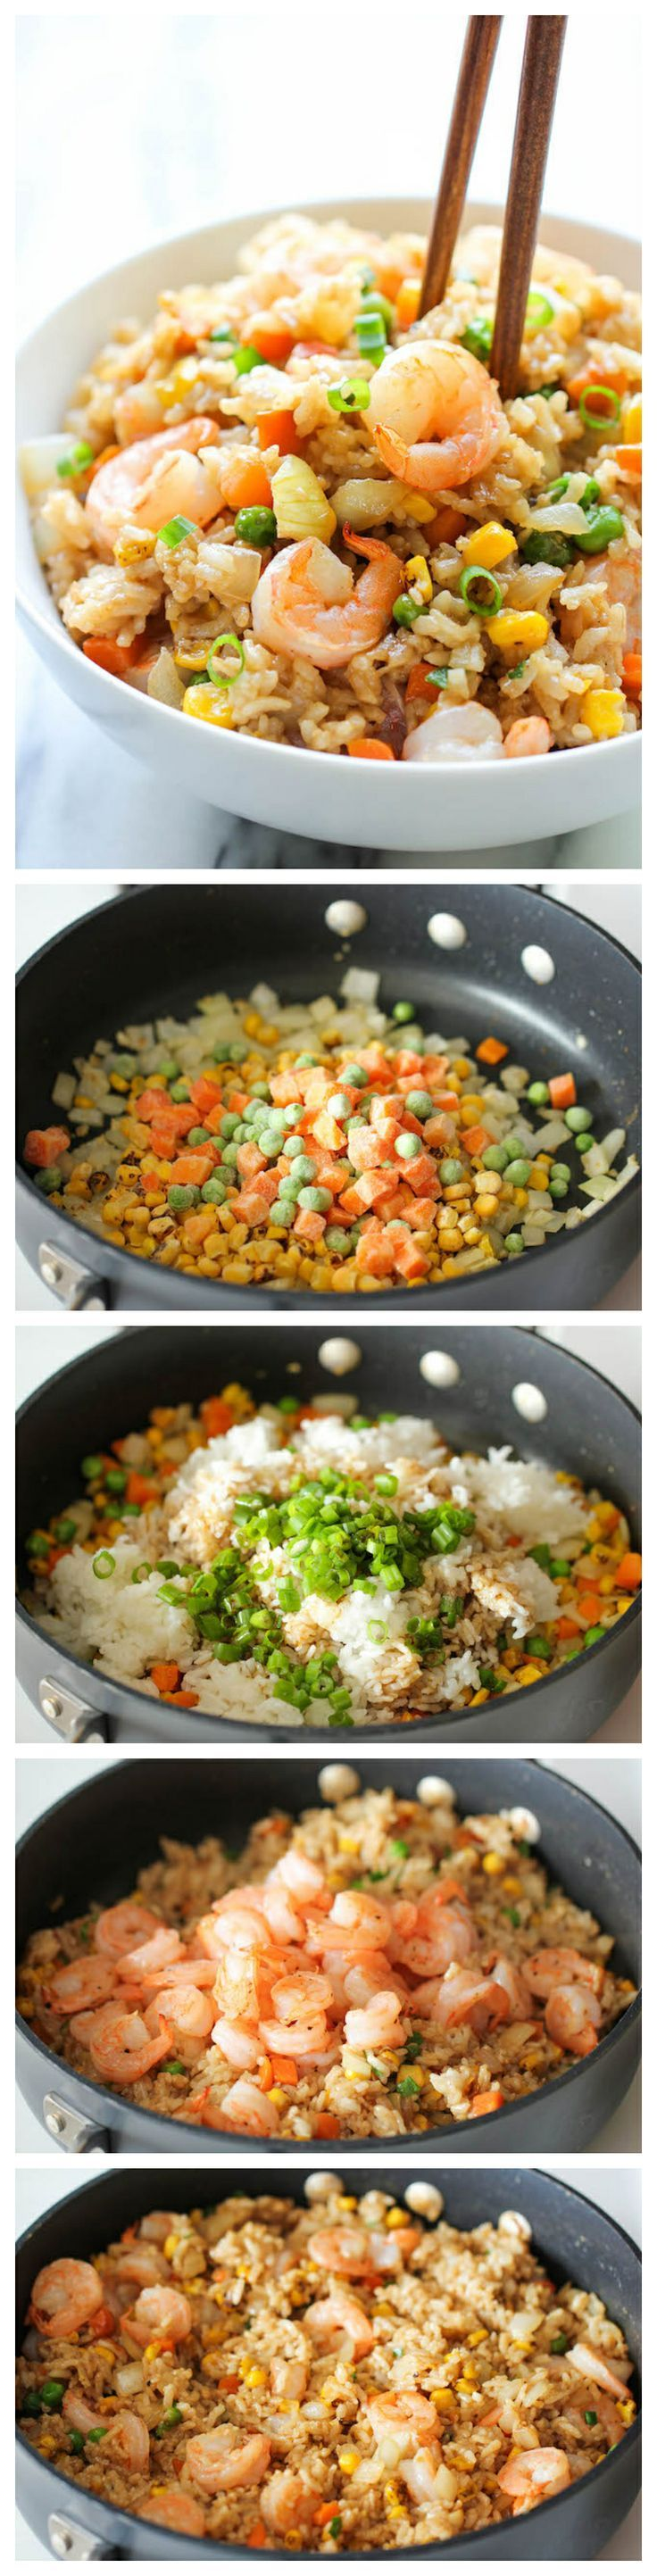 Shrimp Fried Rice – Why order take-out?   This homemade version is so much healthier, cheaper and tastes a million times